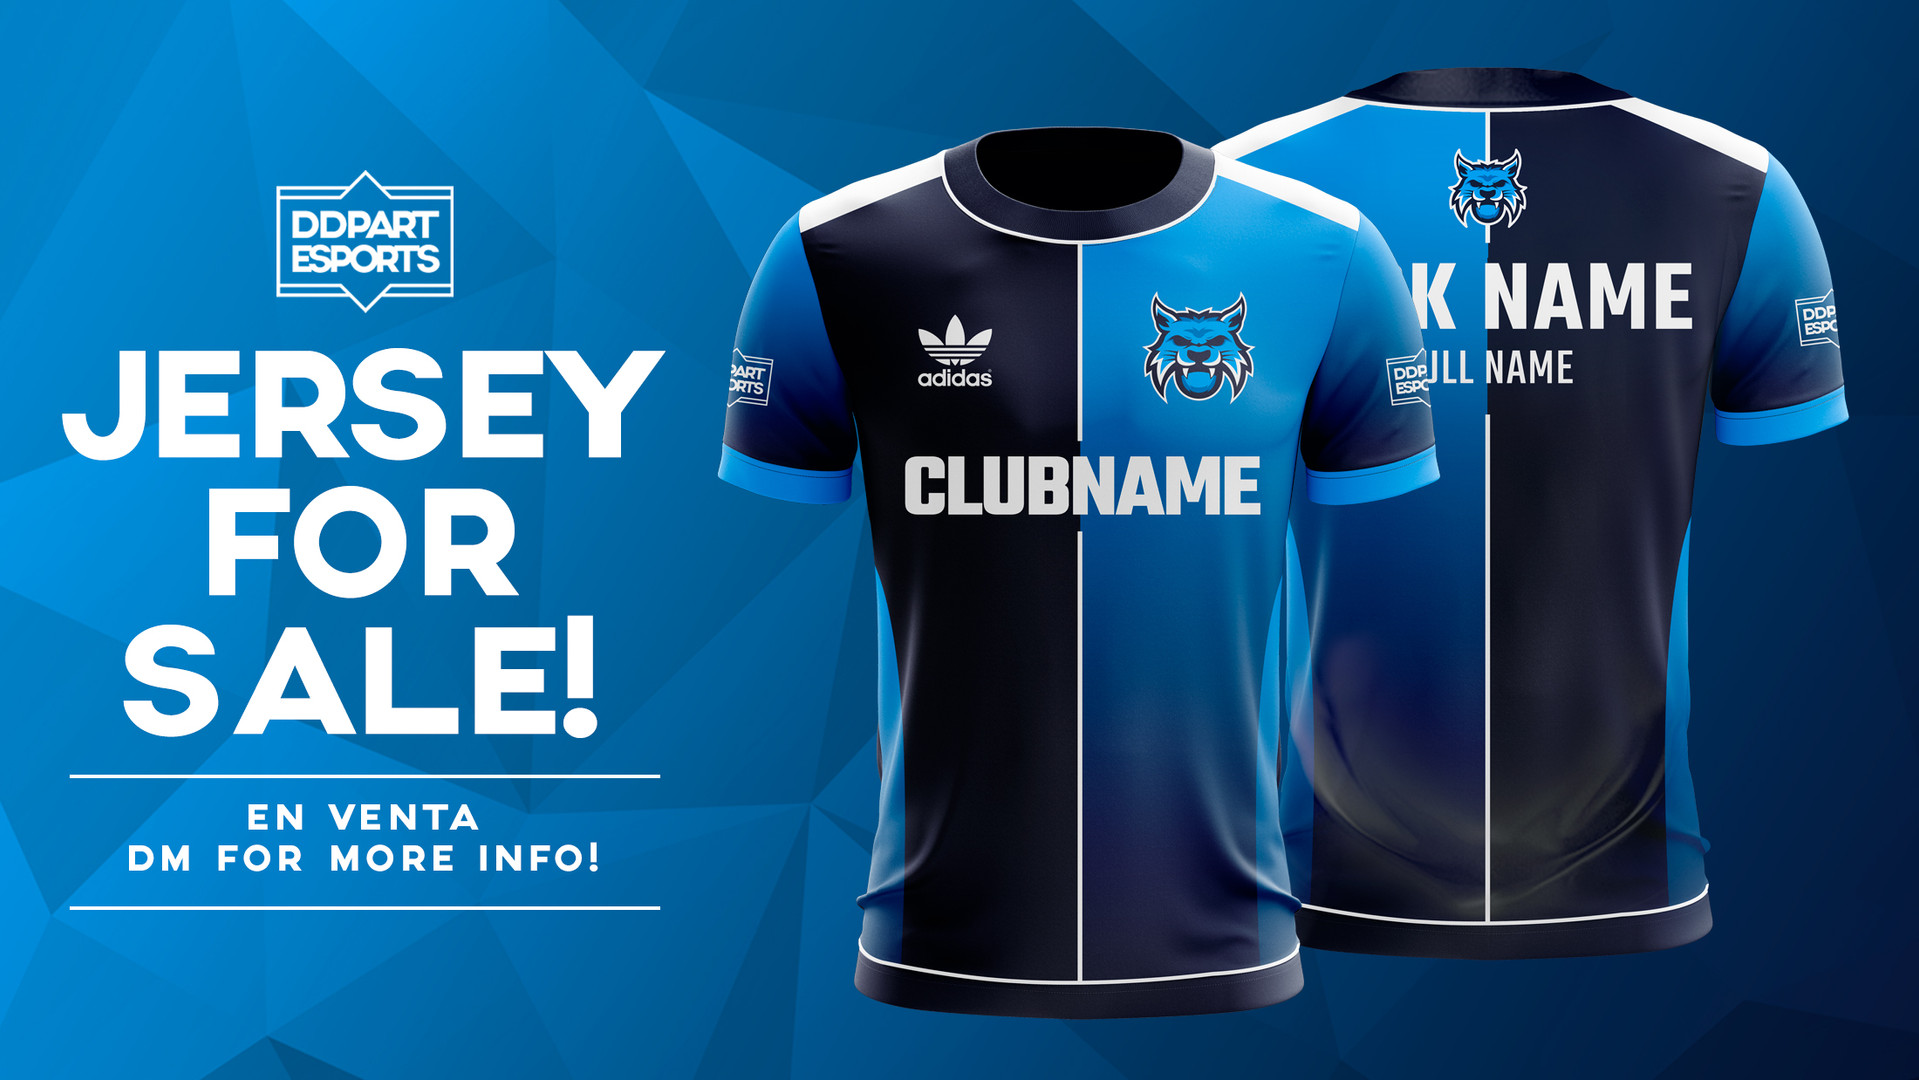 Jersey For Sale!